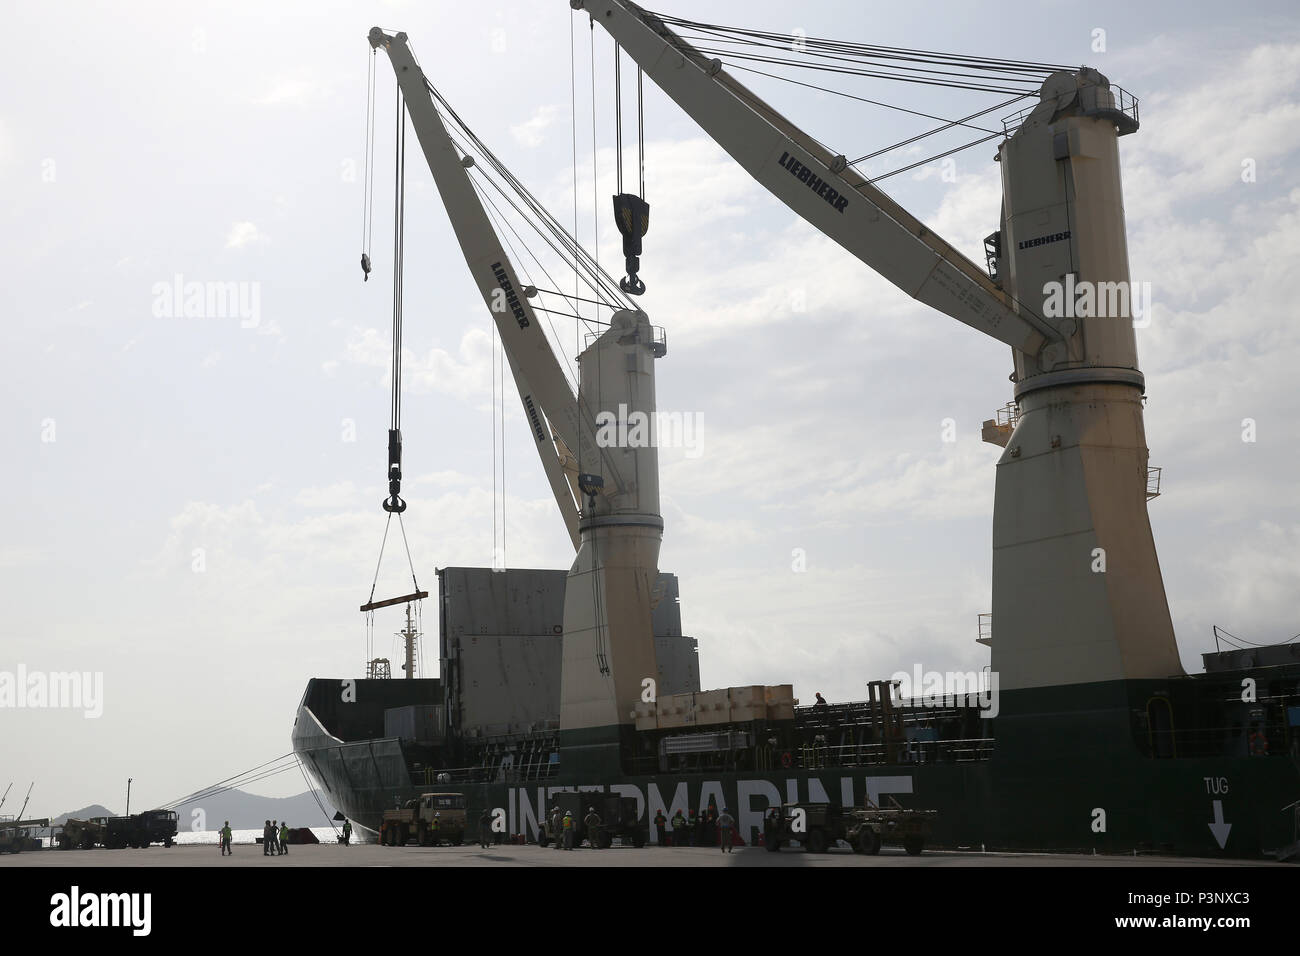 160712-N-IX266-015 SATTAHIP, Thailand—A group of military vehicles is staged portside of the general purpose, heavy lift ship MV OCEAN GLORY during a backload of equipment at Chuk Samet, here, from exercise Hanuman Guardian, July 12. Military Sealift Command's contracted voyage-charter MV OCEAN GLORY recently conducted a backload of about 250 items in Thailand as part of U.S. Army Pacific's mobility operation PACIFIC PATHWAYS 16-2. (U.S. Navy photo by Grady T. Fontana/Released) - Stock Image